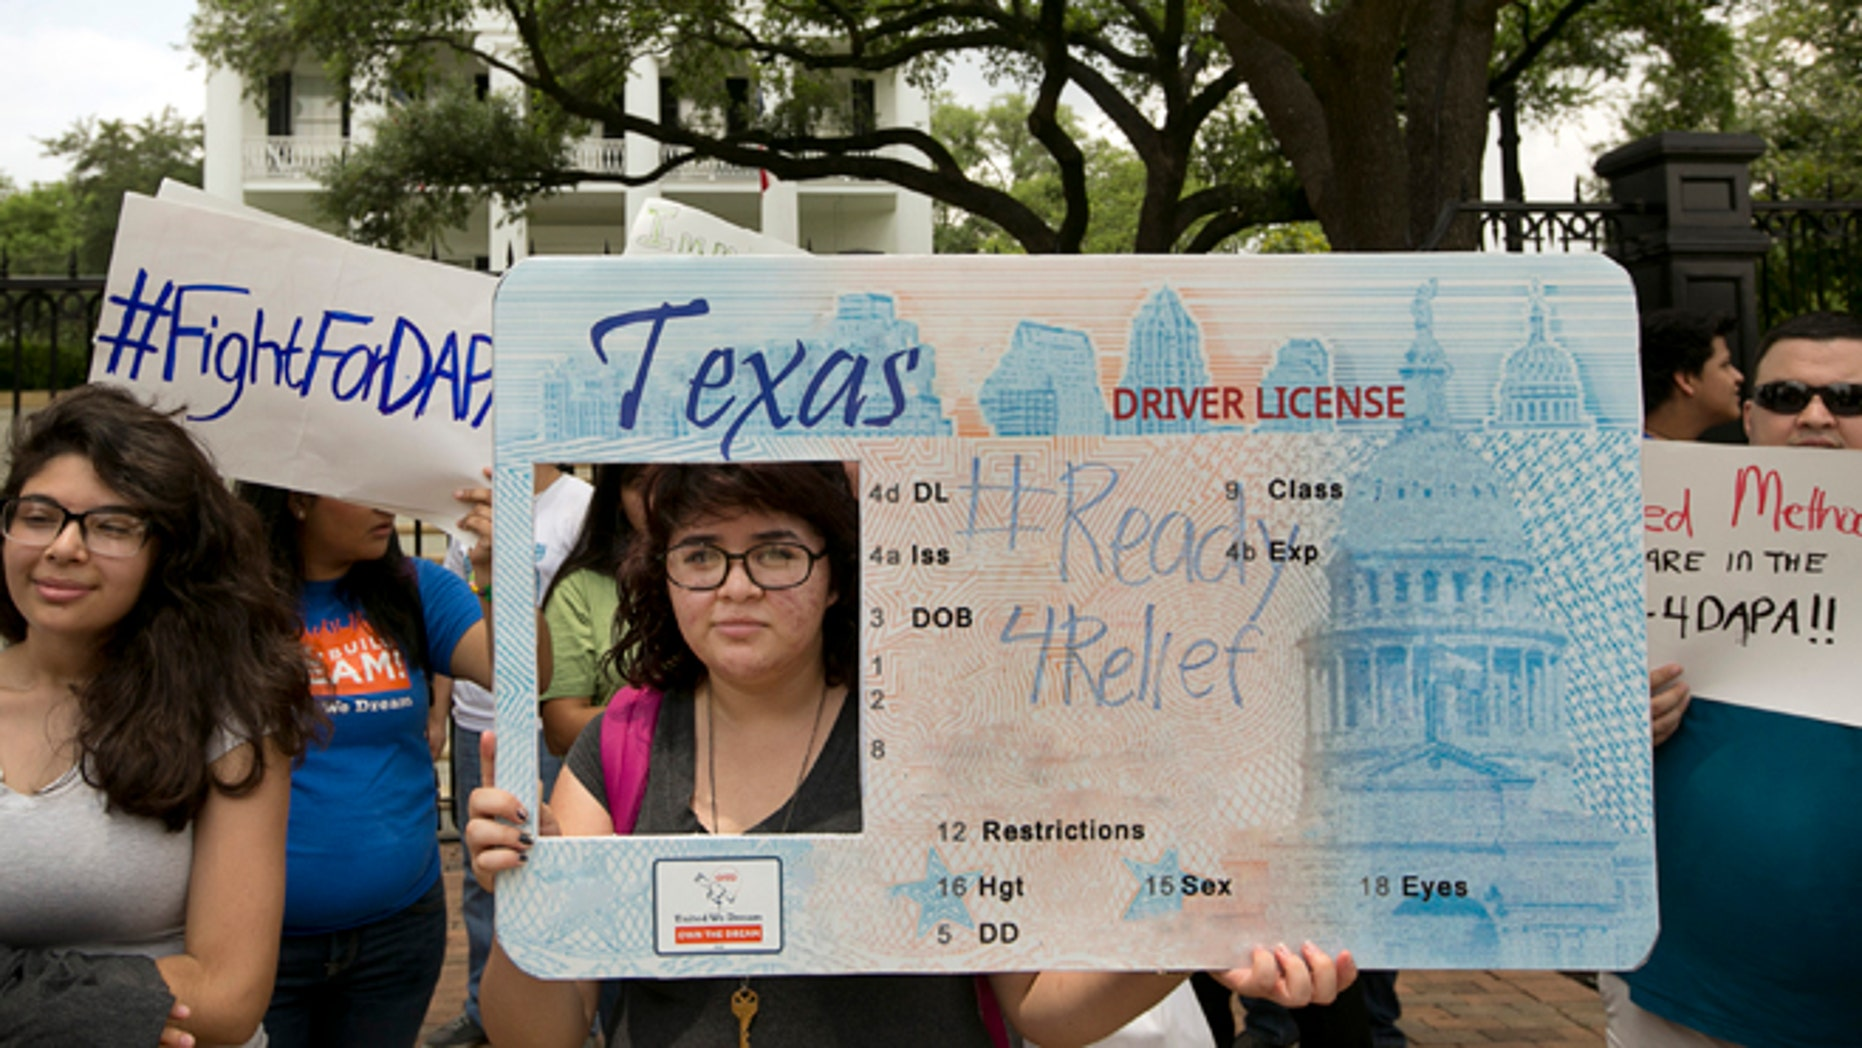 Alondra Chavez, 17, of Pasadena, Texas, and other immigrant rights activists protest outside the Governor's Mansion in Austin, Texas, on Tuesday May 19, 2015. The group was protesting the Texas lawsuit against the Deferred Action for Parents of Americans, also known as DAPA, which would have gone into effect on Tuesday.   (Jay Janner/Austin American-Statesman via AP)